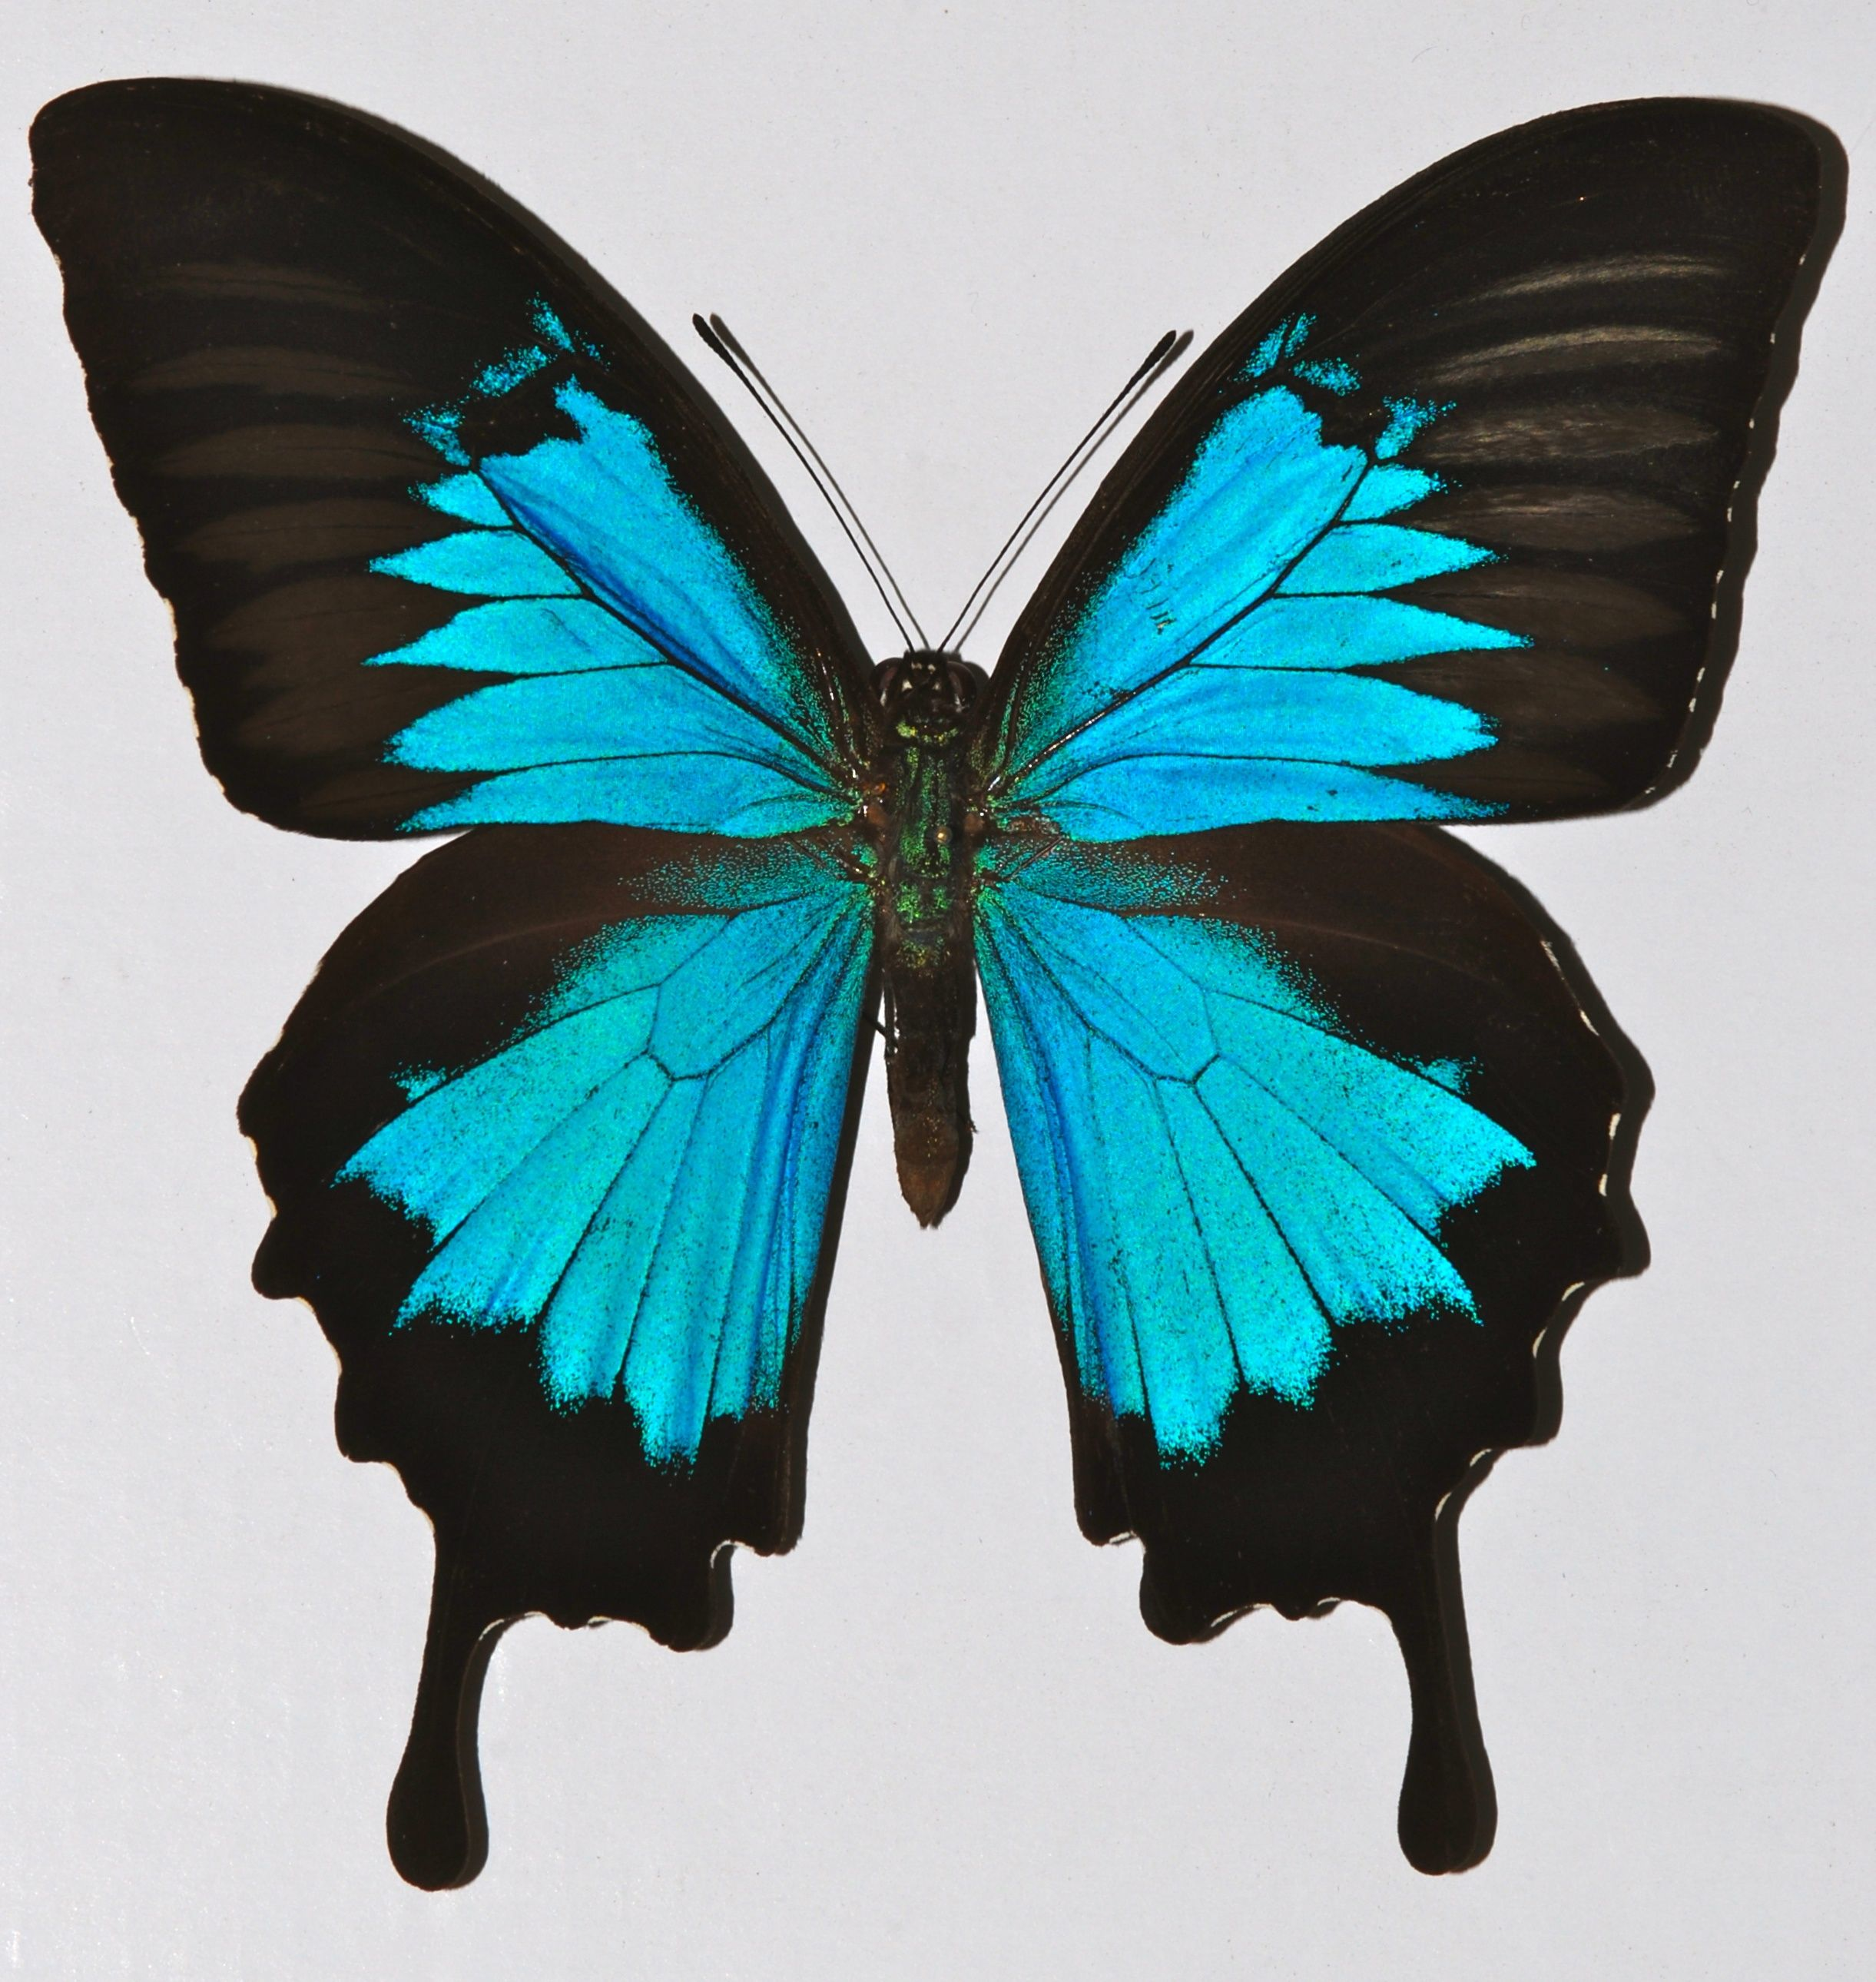 The Ulysses butterfly is found in most tropical rainforest